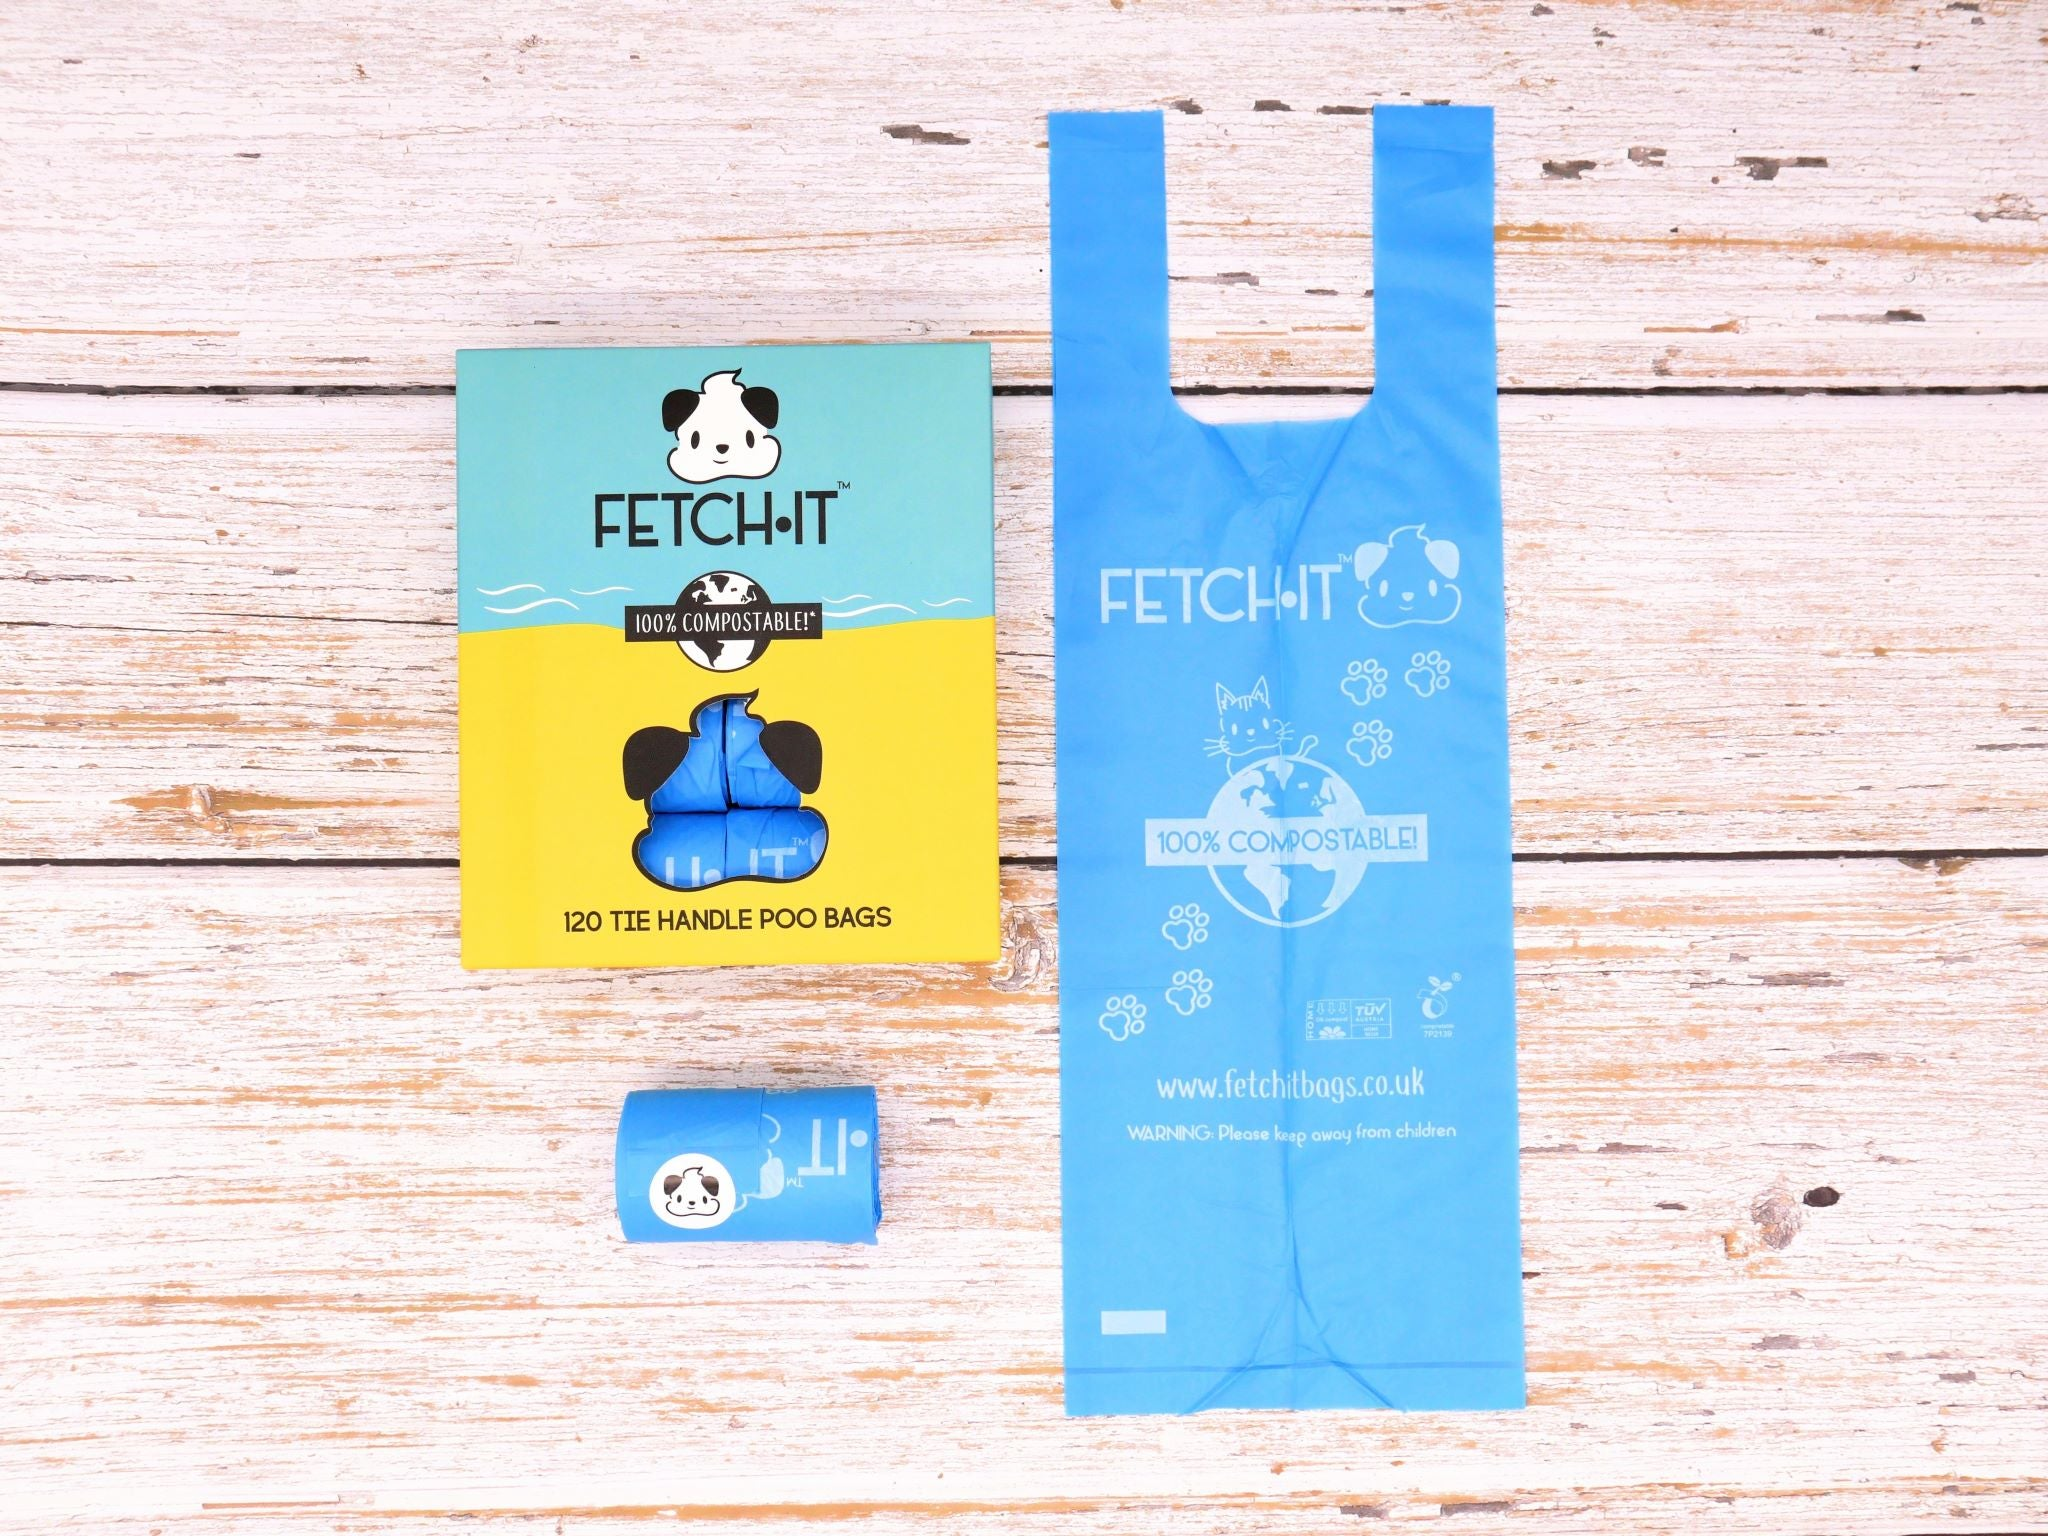 FETCH IT Home compostable large poo bags - cardboard box and bag